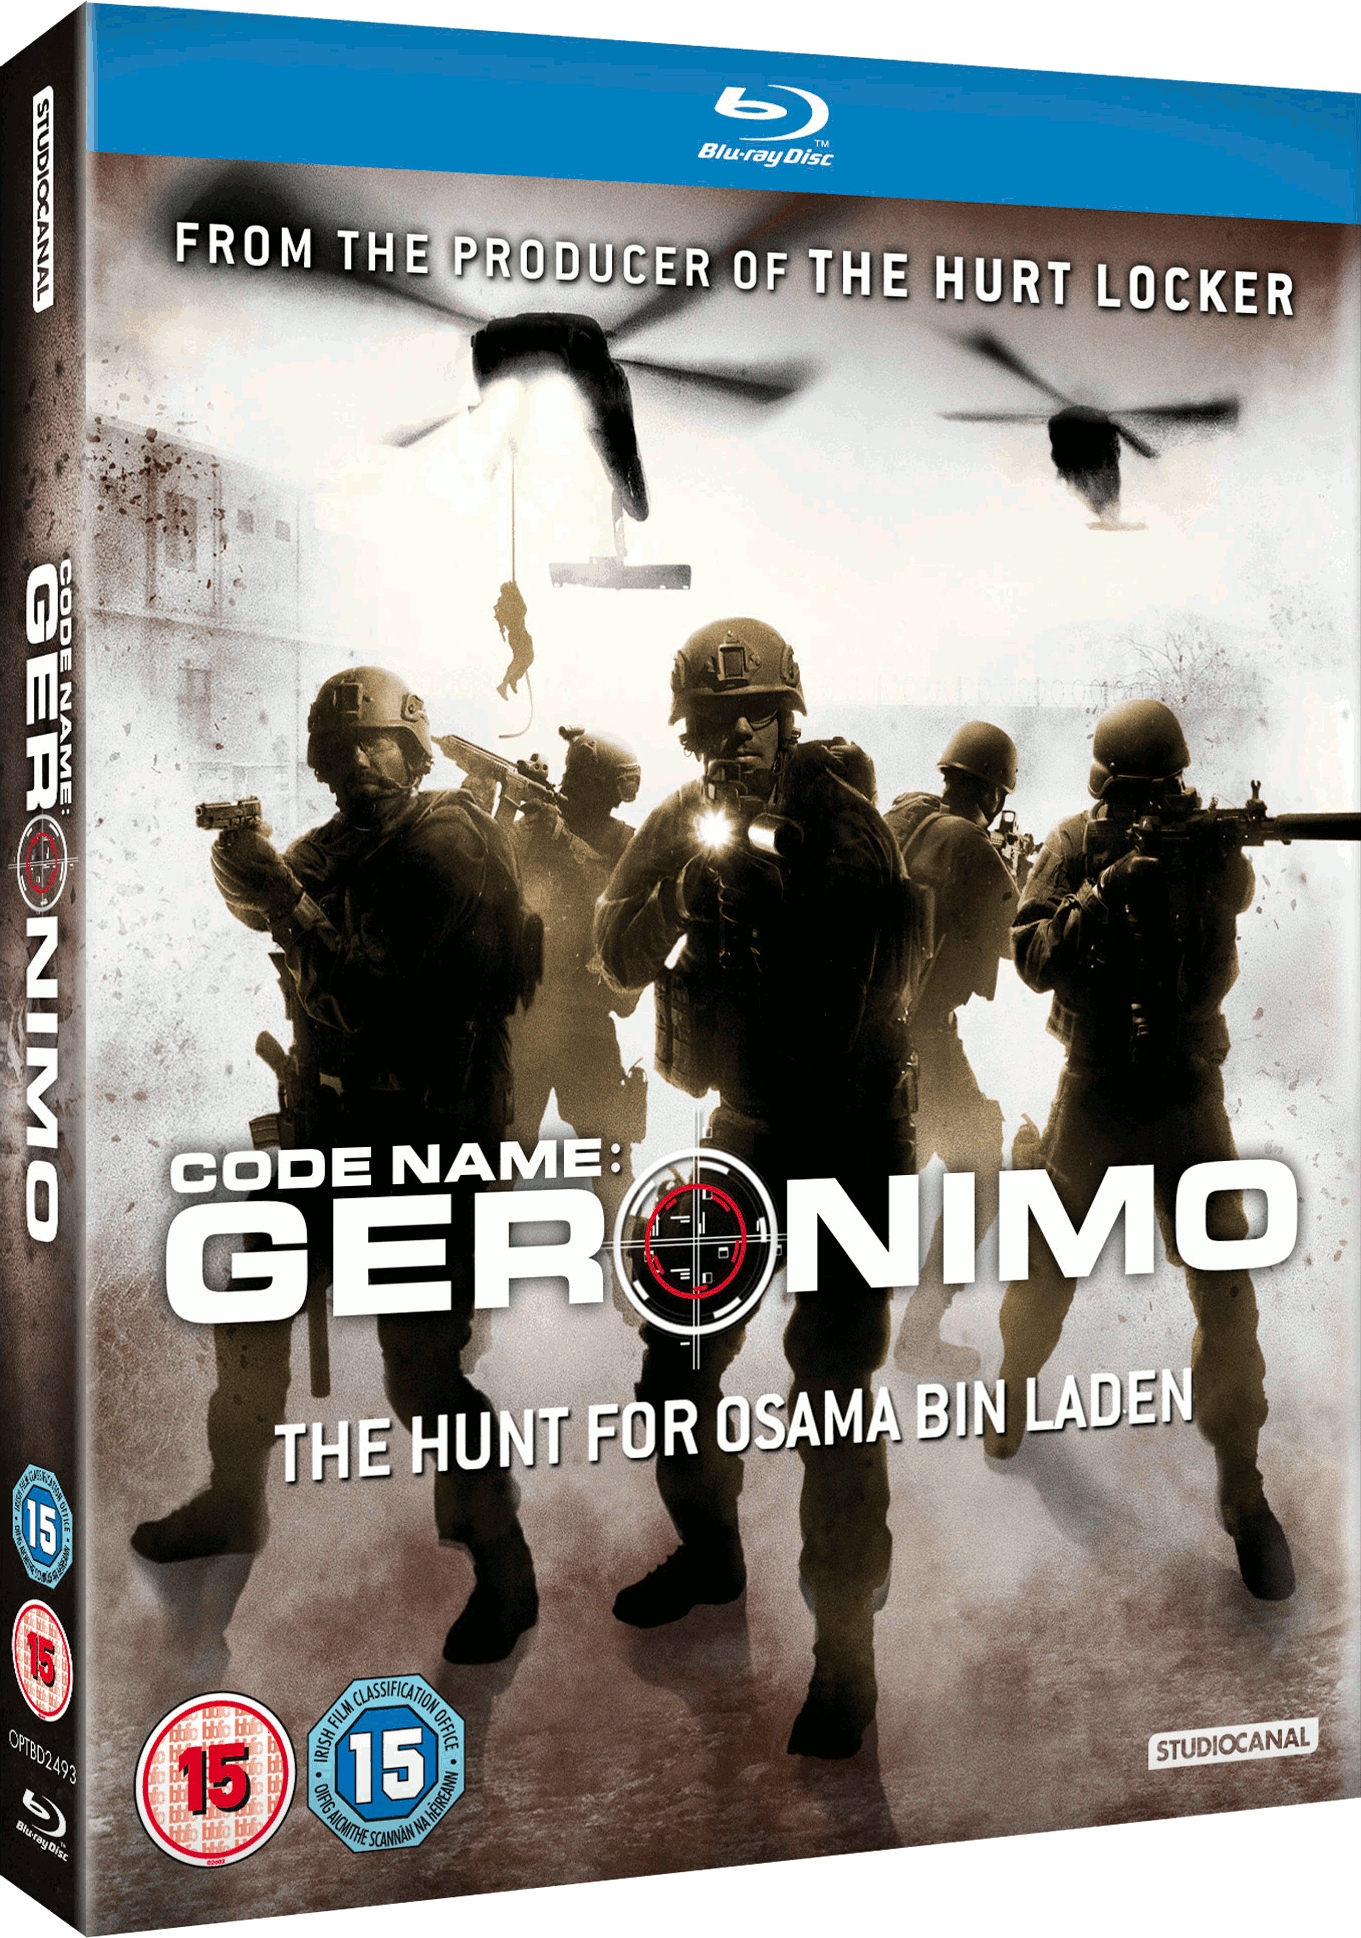 Code Name Geronimo Prison Break Fanpop